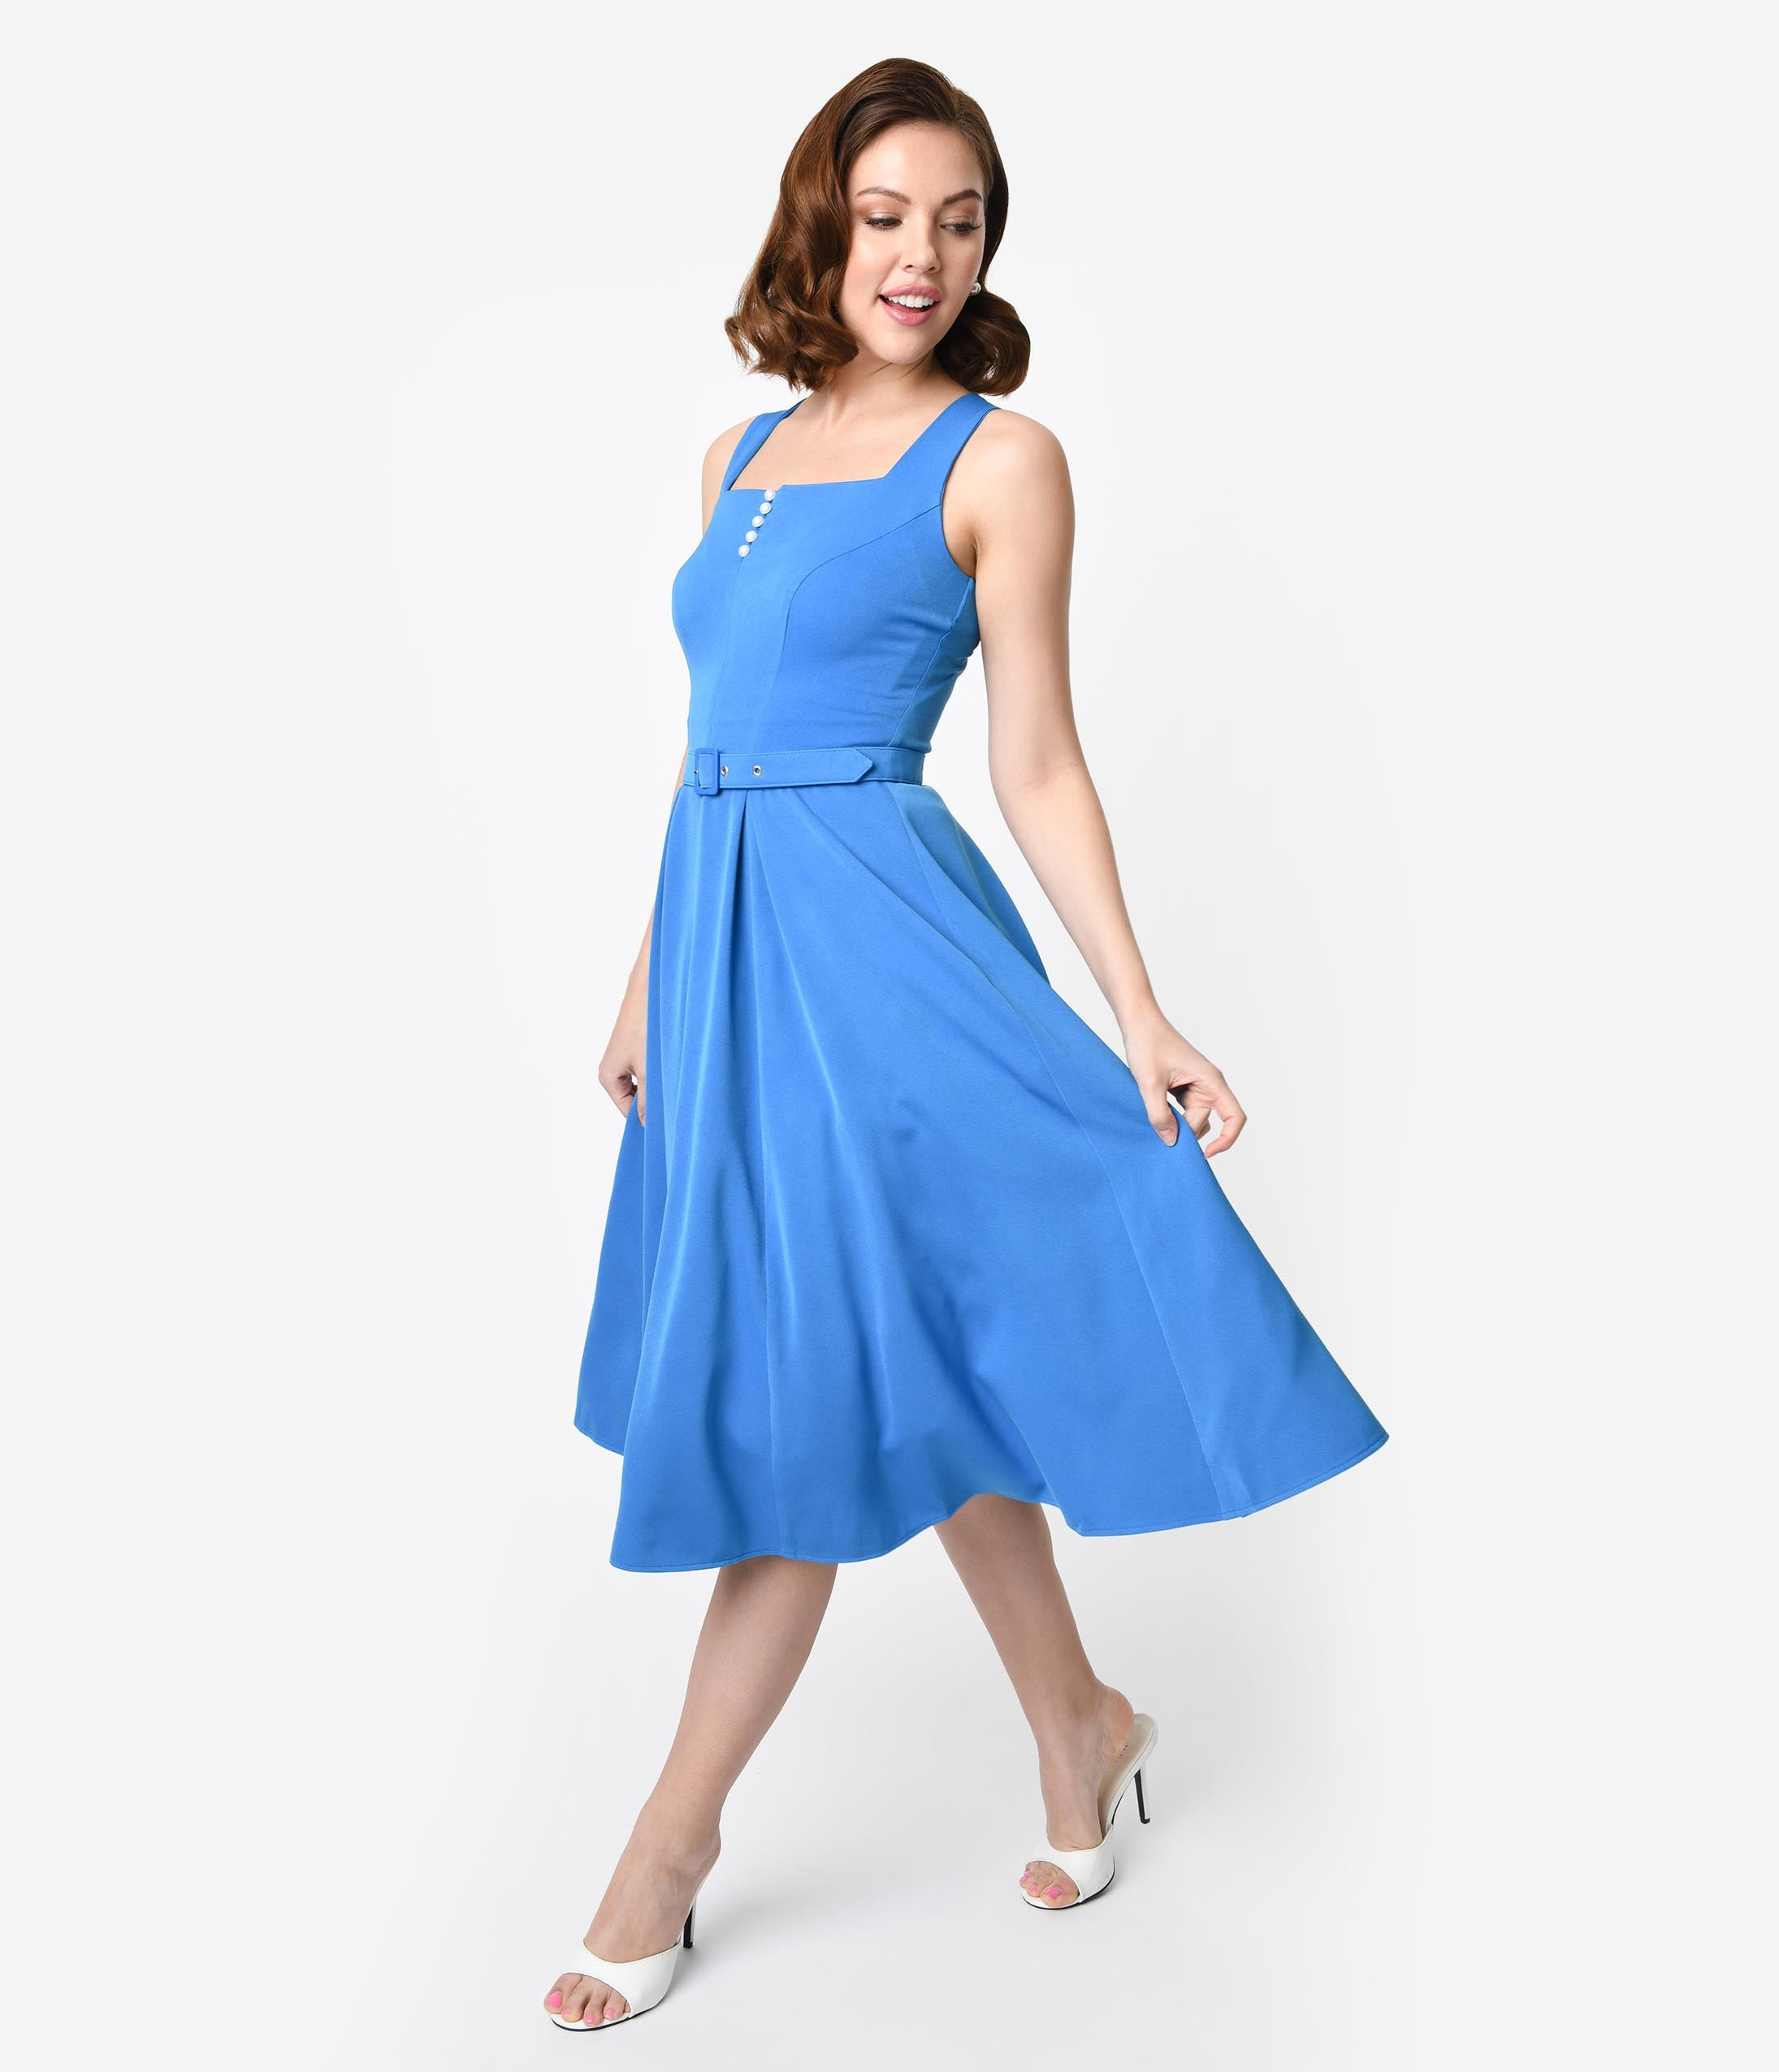 Pin Up Dresses | Pinup Clothing & Fashion Miss Candyfloss 1950S Style Blue Crepe Sleeveless Bella Swing Dress $89.00 AT vintagedancer.com